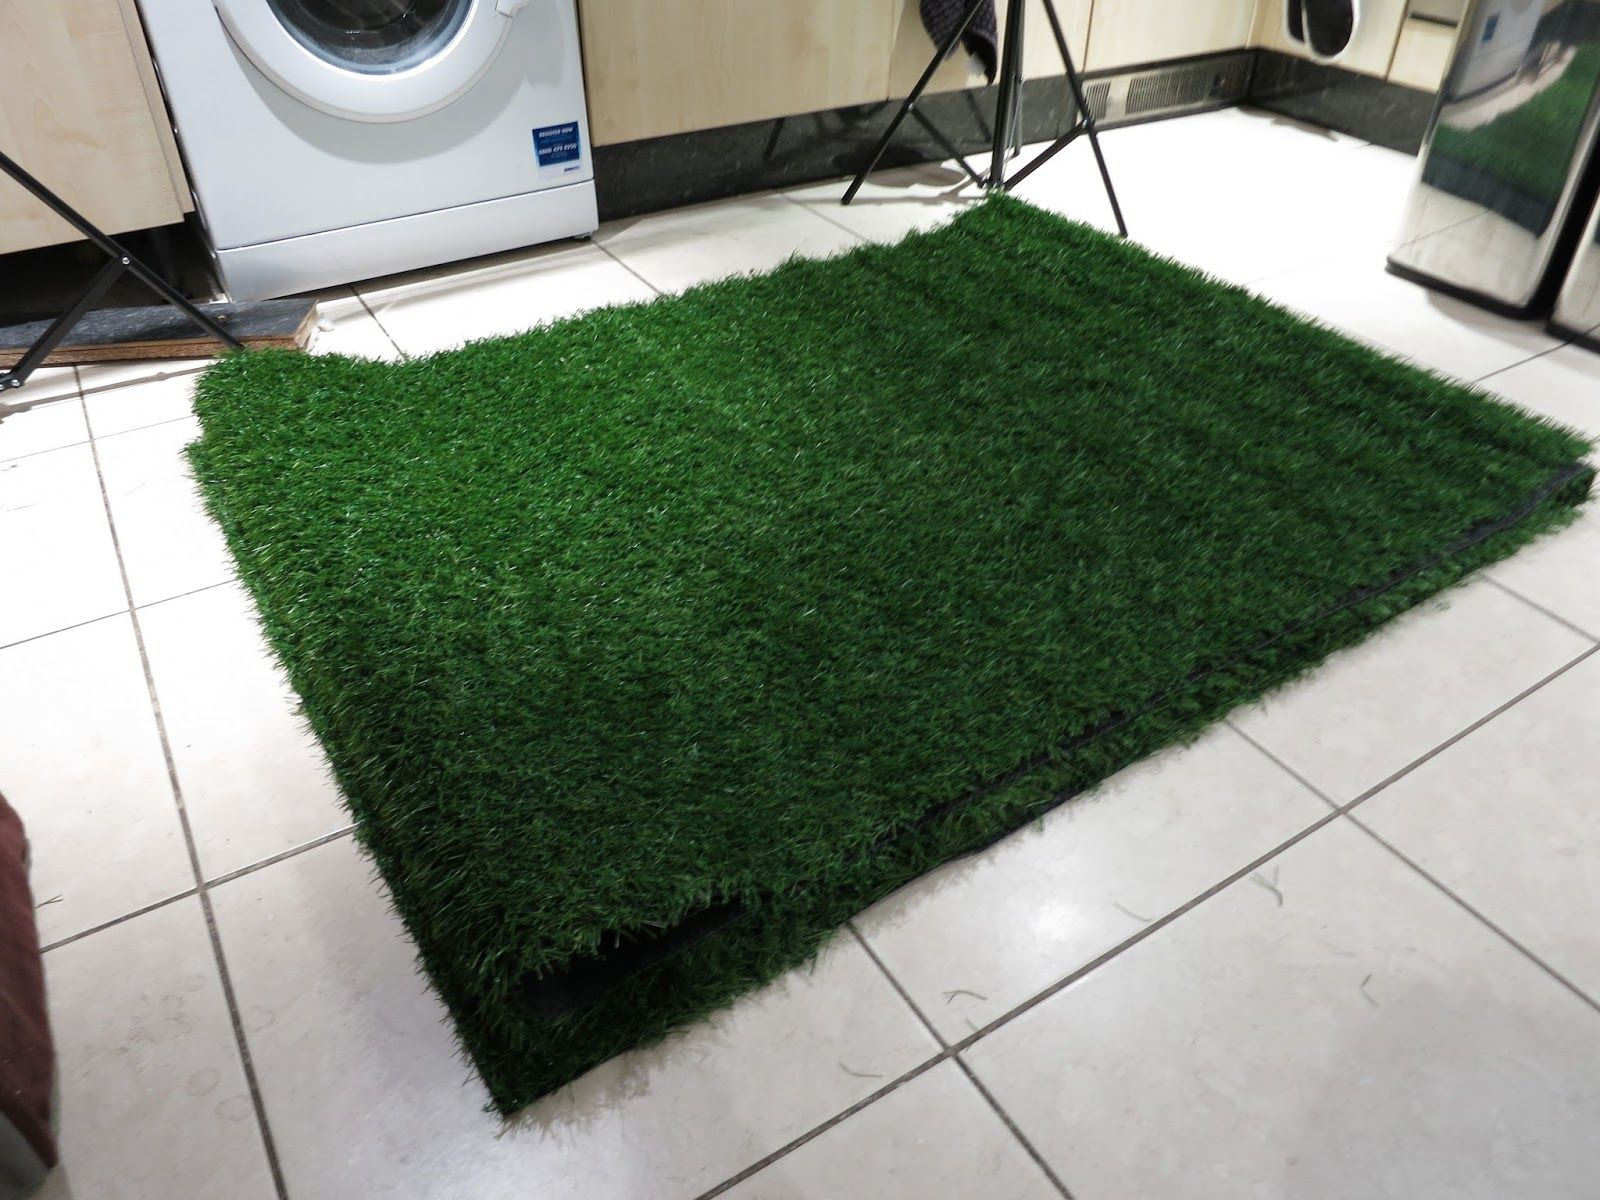 utubemakeup HOWTO How I made my artificial grass